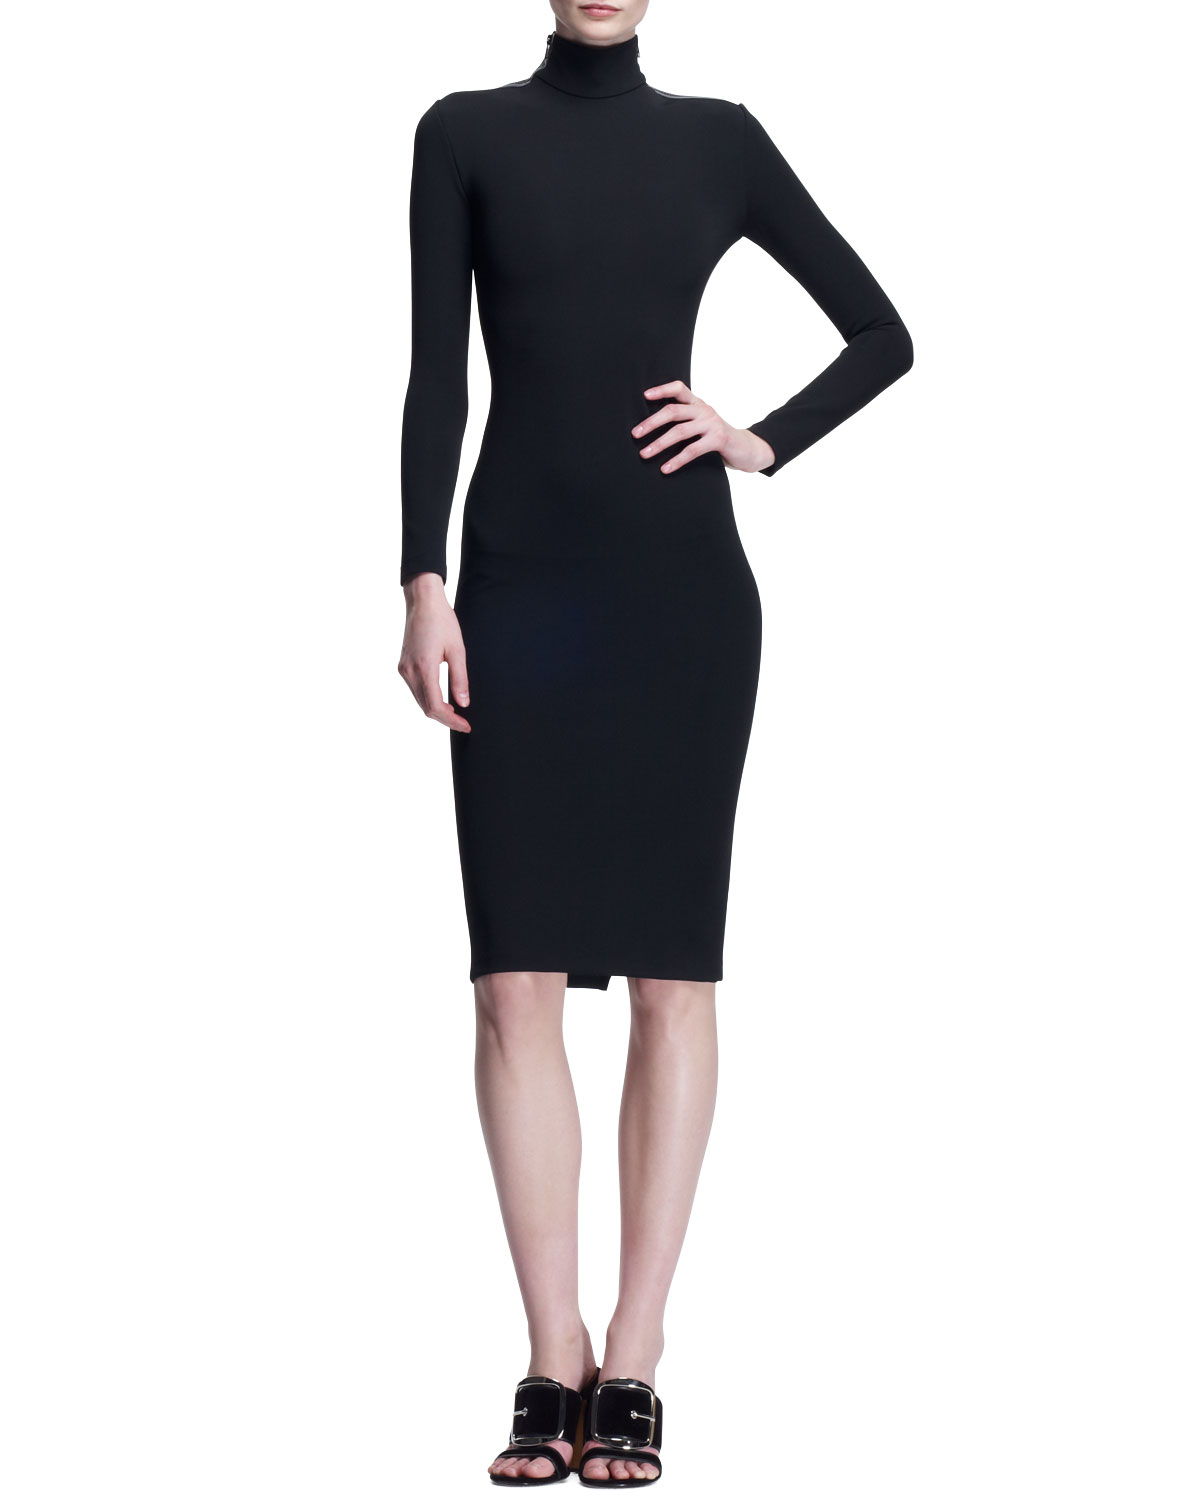 Womens Fitted Zip Shoulder Dress   Givenchy   Black (40/6)